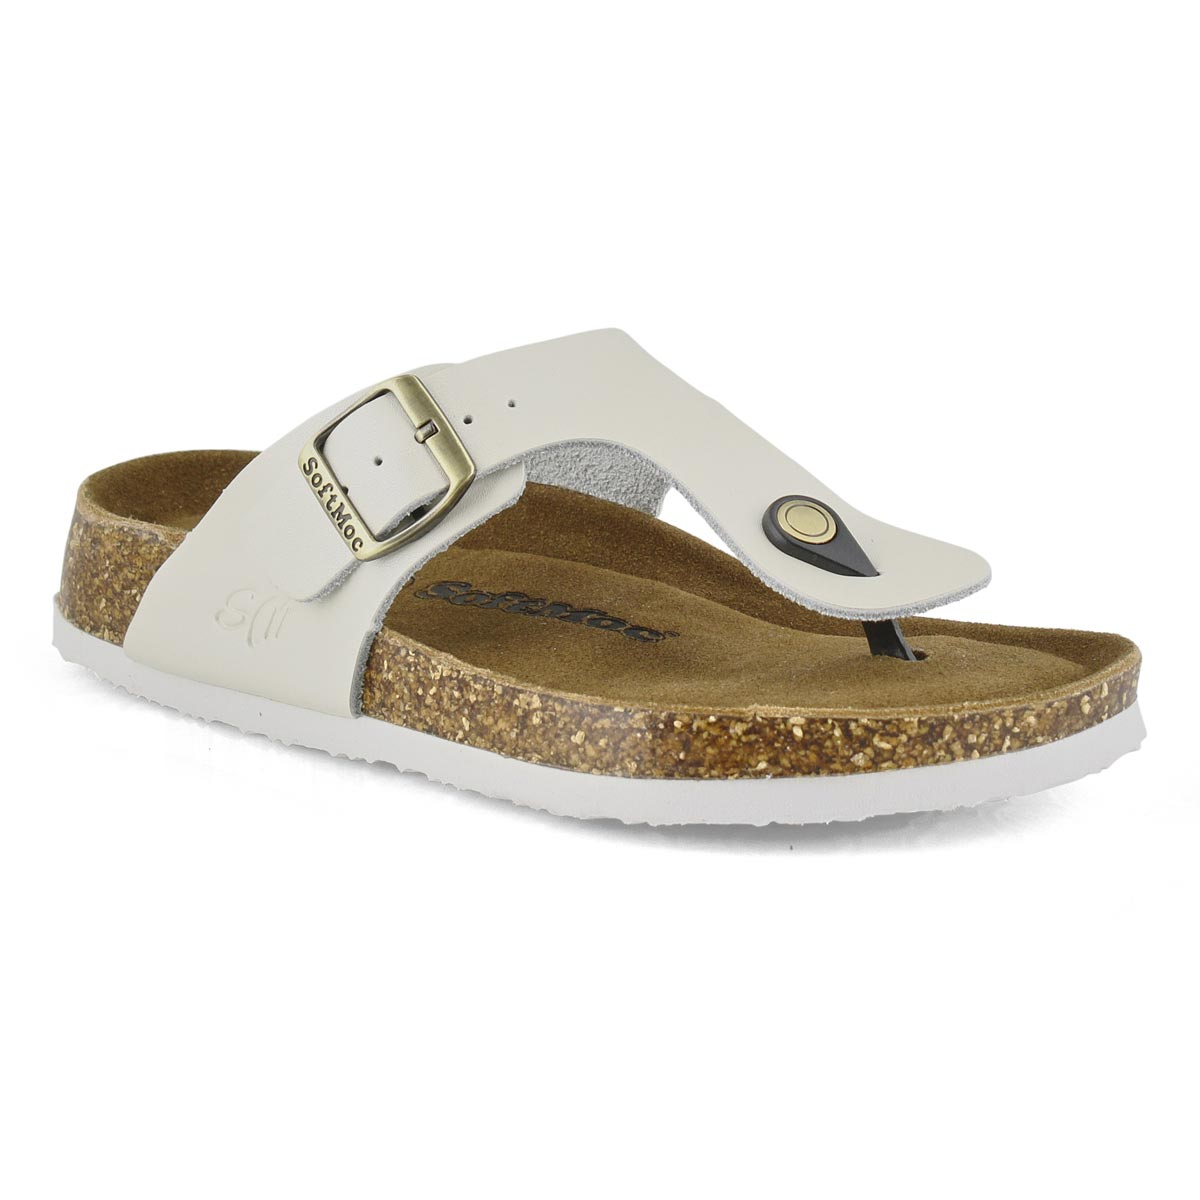 Women's ANGY 5 pearl white memory foam sandals